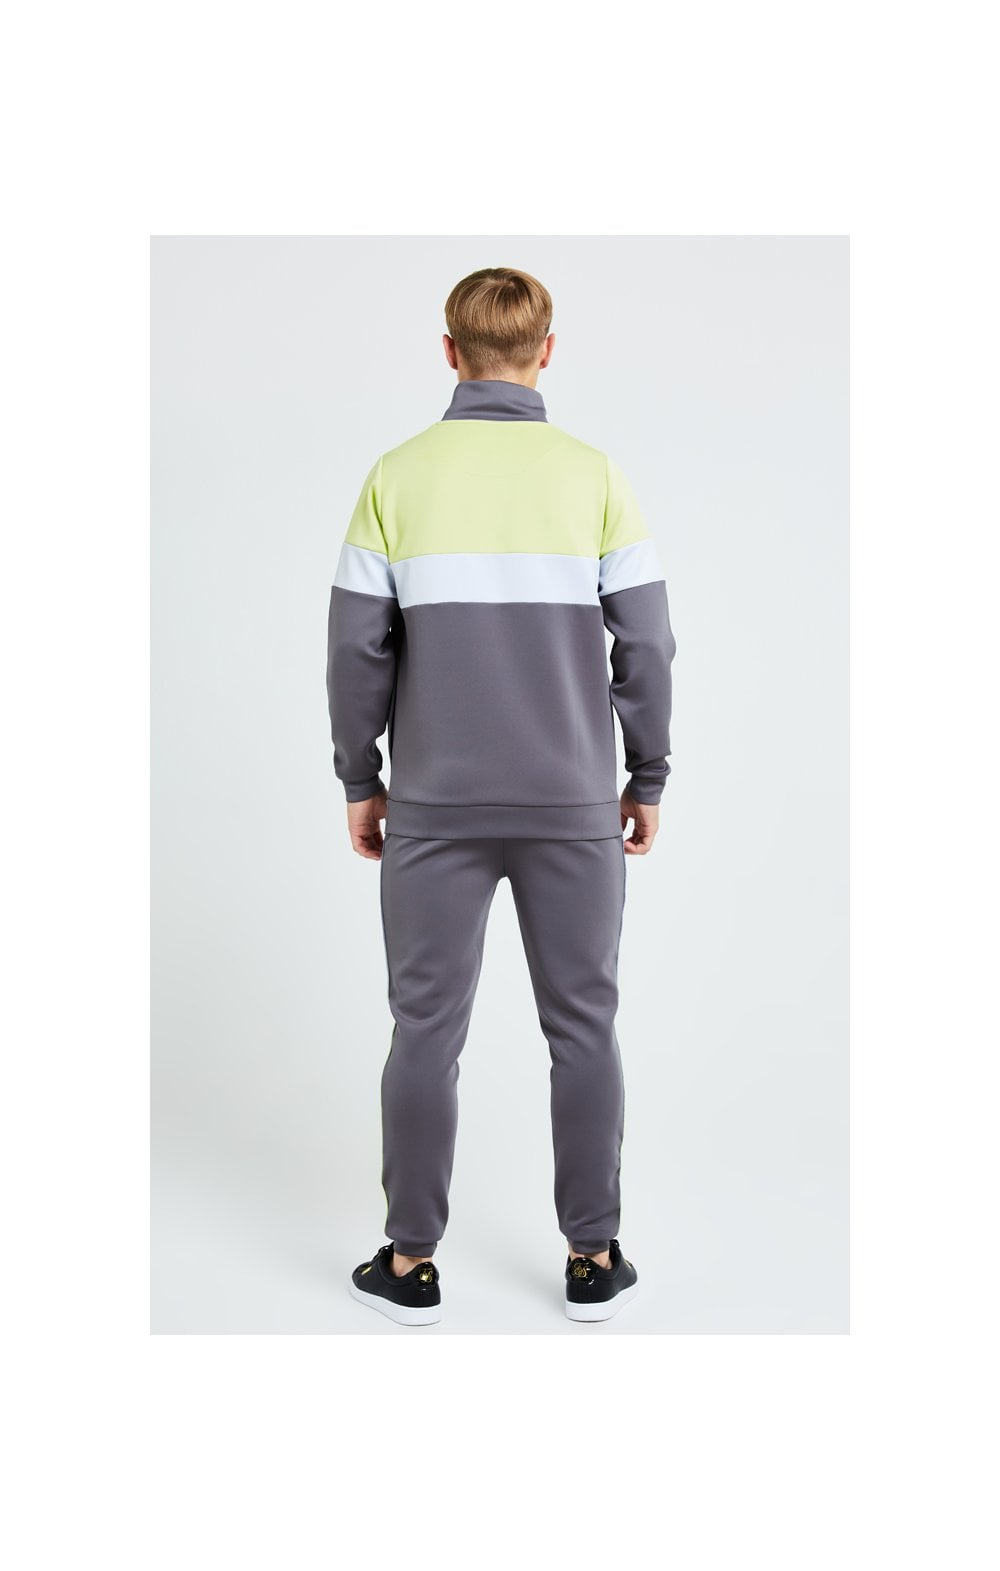 Load image into Gallery viewer, Illusive London Blaze Quarter Zip Hoodie - Dark Grey & Lime (5)